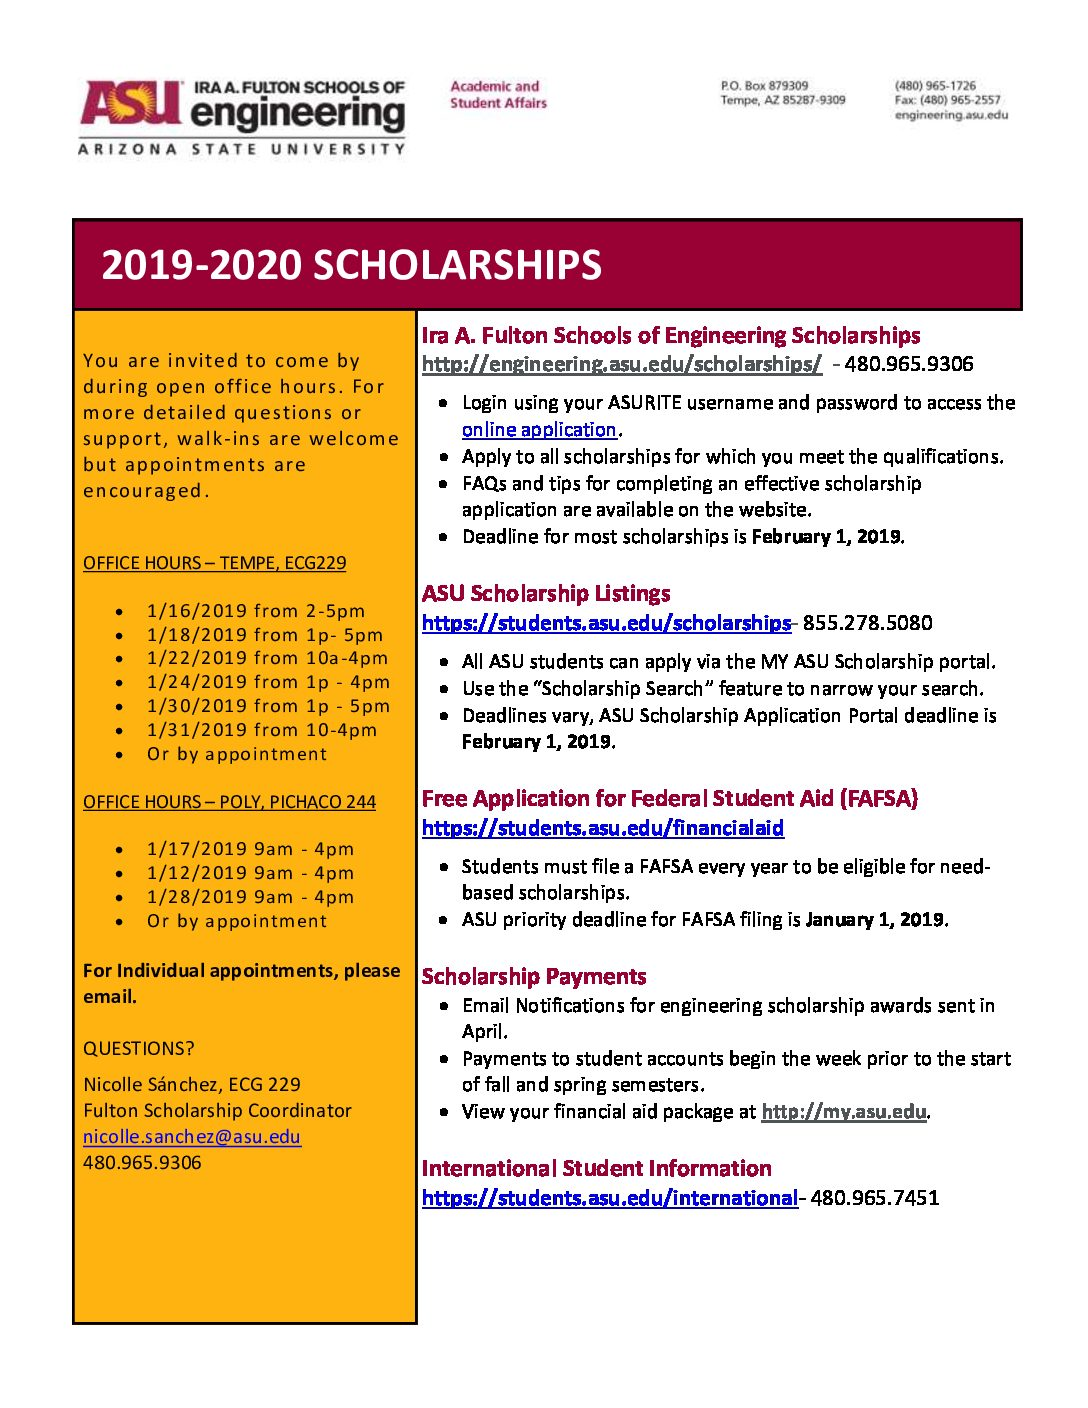 Asu Calendar Fall 2020 Fulton Student Organizations | Reach out. Make connections. Have